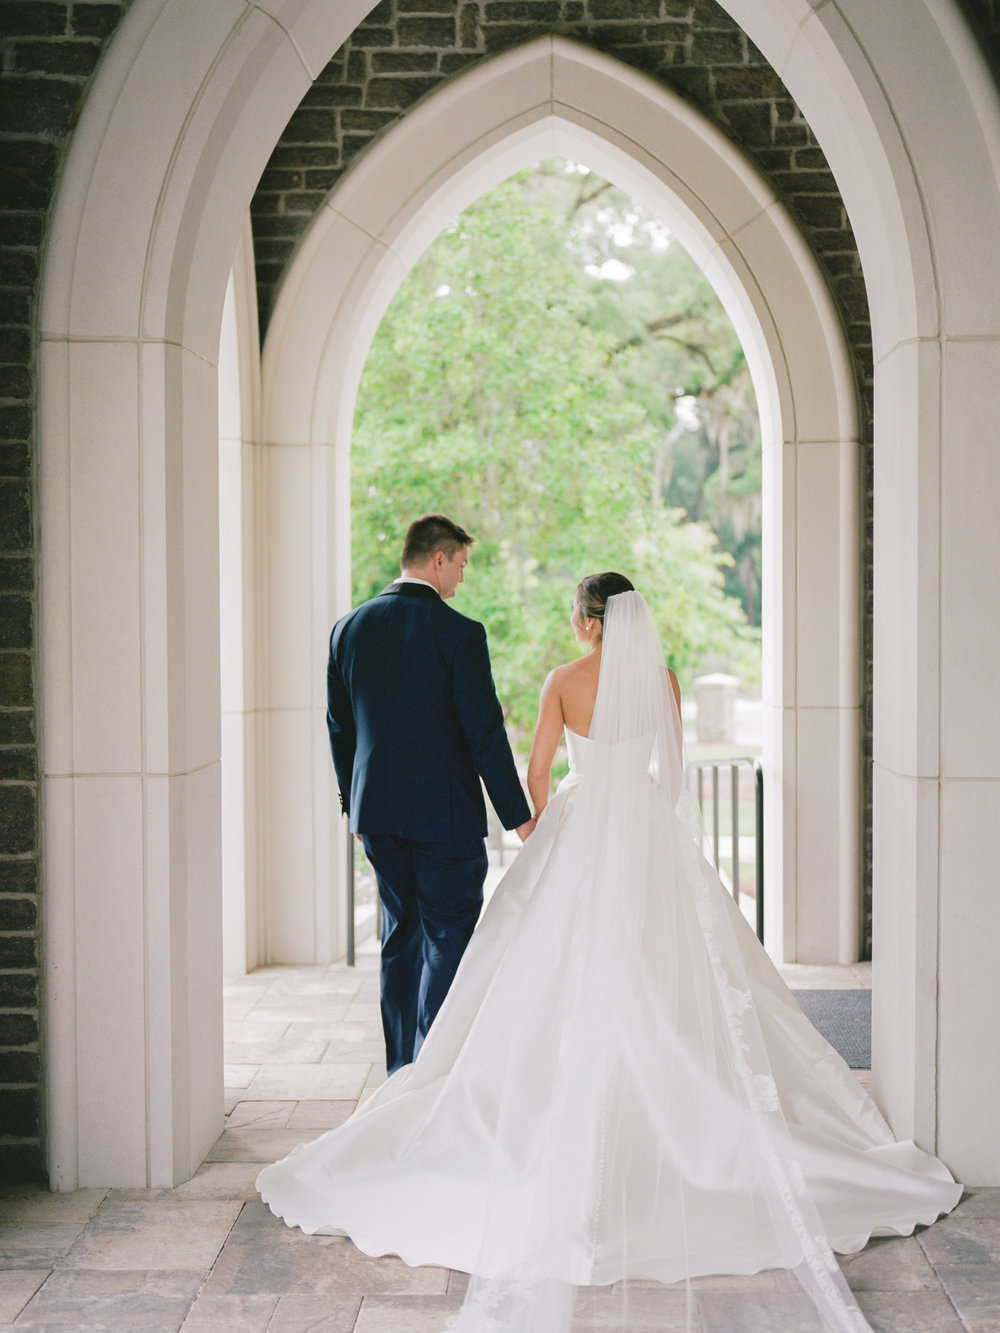 madison_and_jason_tallahassee_wedding_photographer_shannon_griffin_bride_and_groom-33.jpg